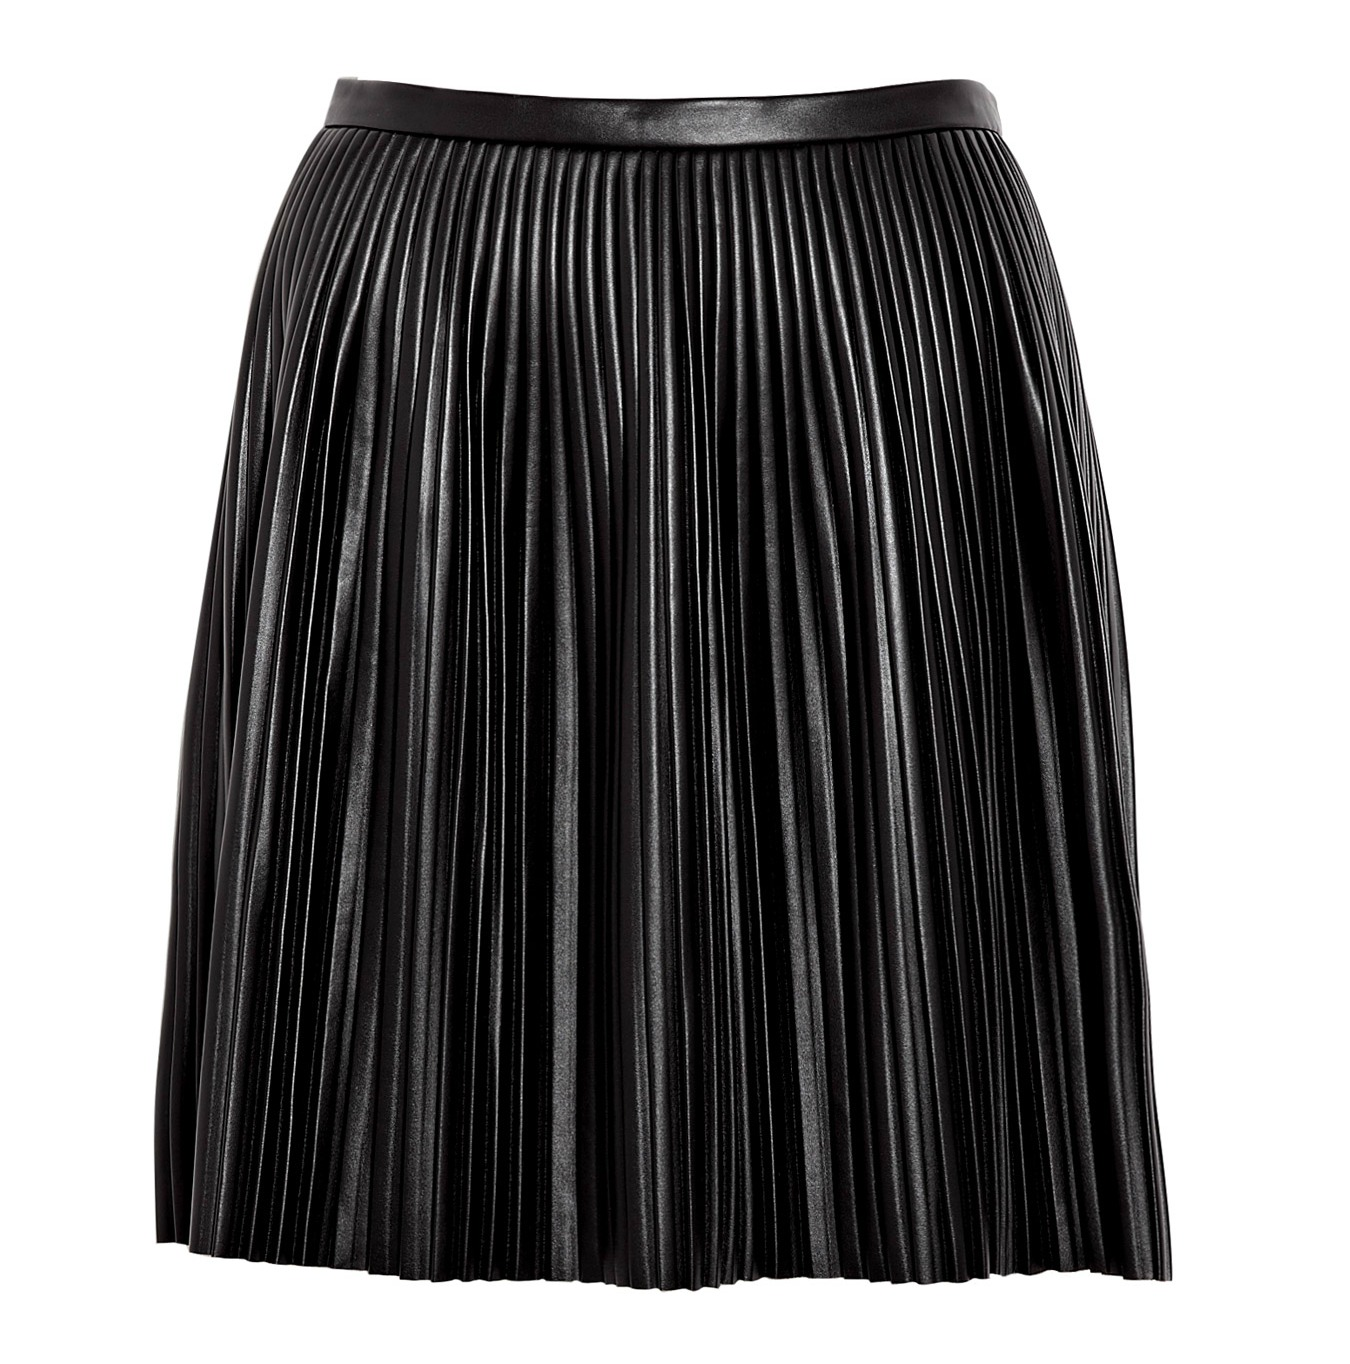 Shop our Collection of Women's Pleated Skirts at truedfil3gz.gq for the Latest Designer Brands & Styles. FREE SHIPPING AVAILABLE!